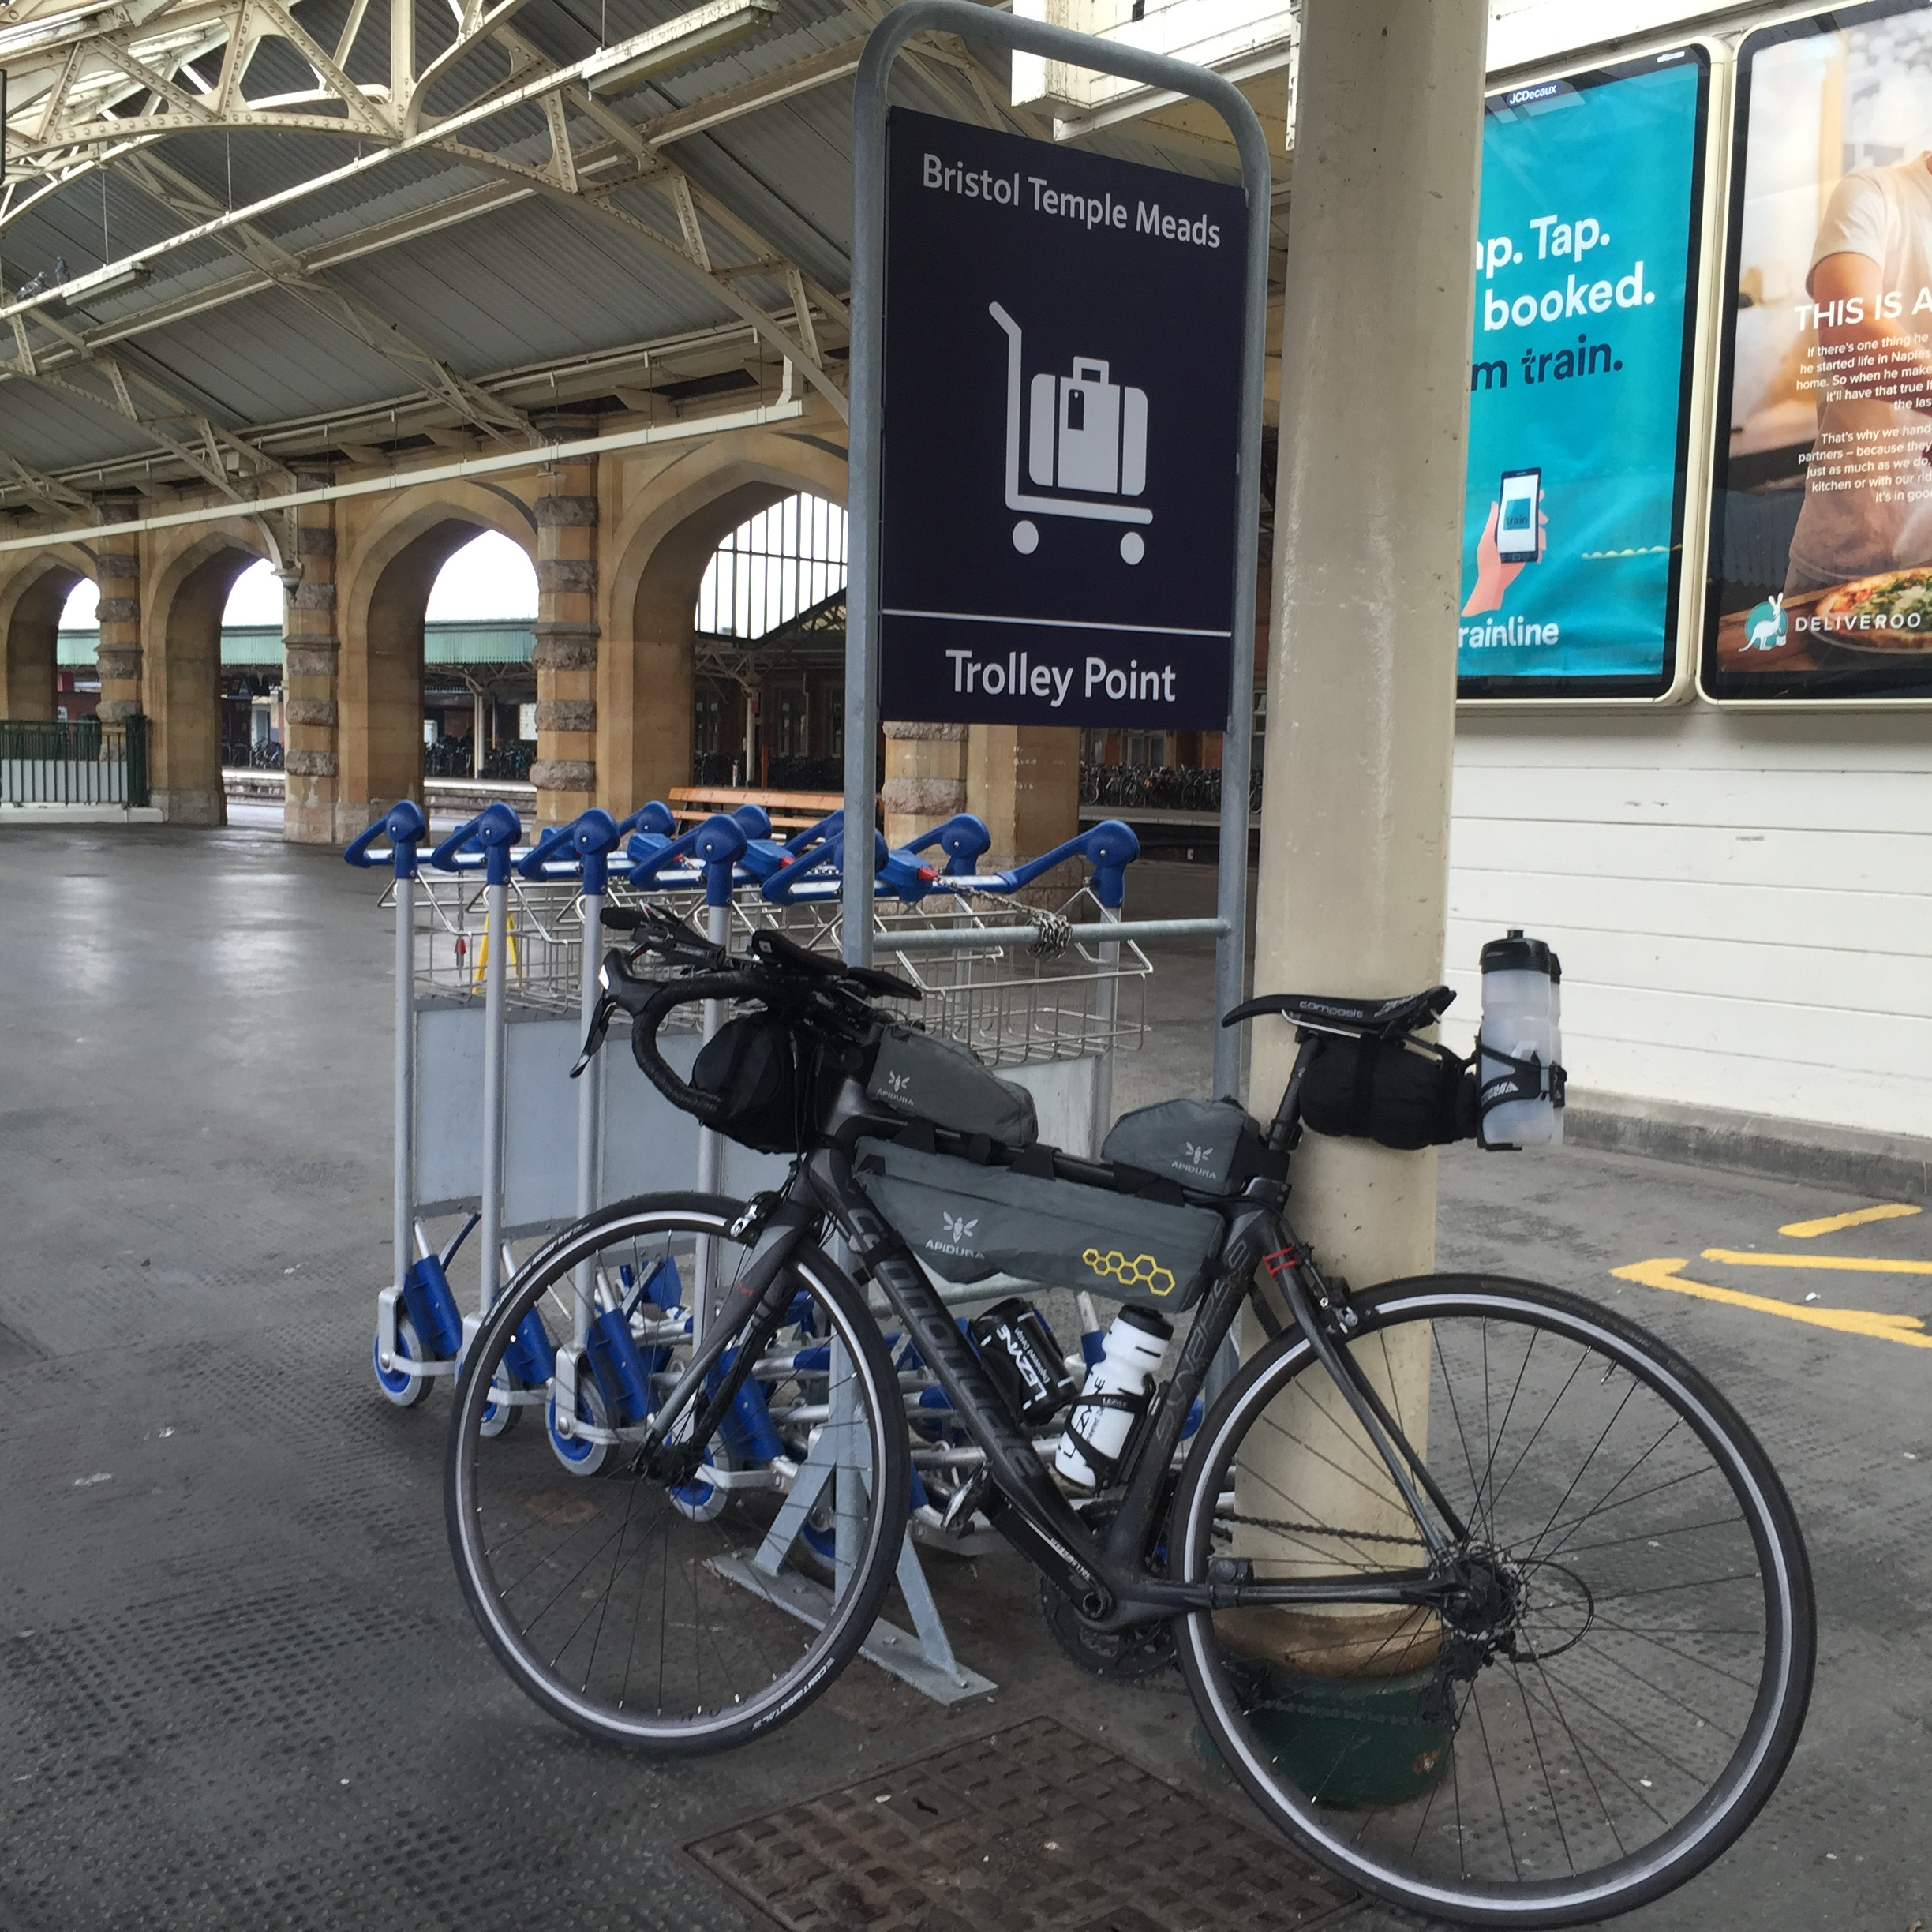 Bike before the Valley Cat at Temple Meads